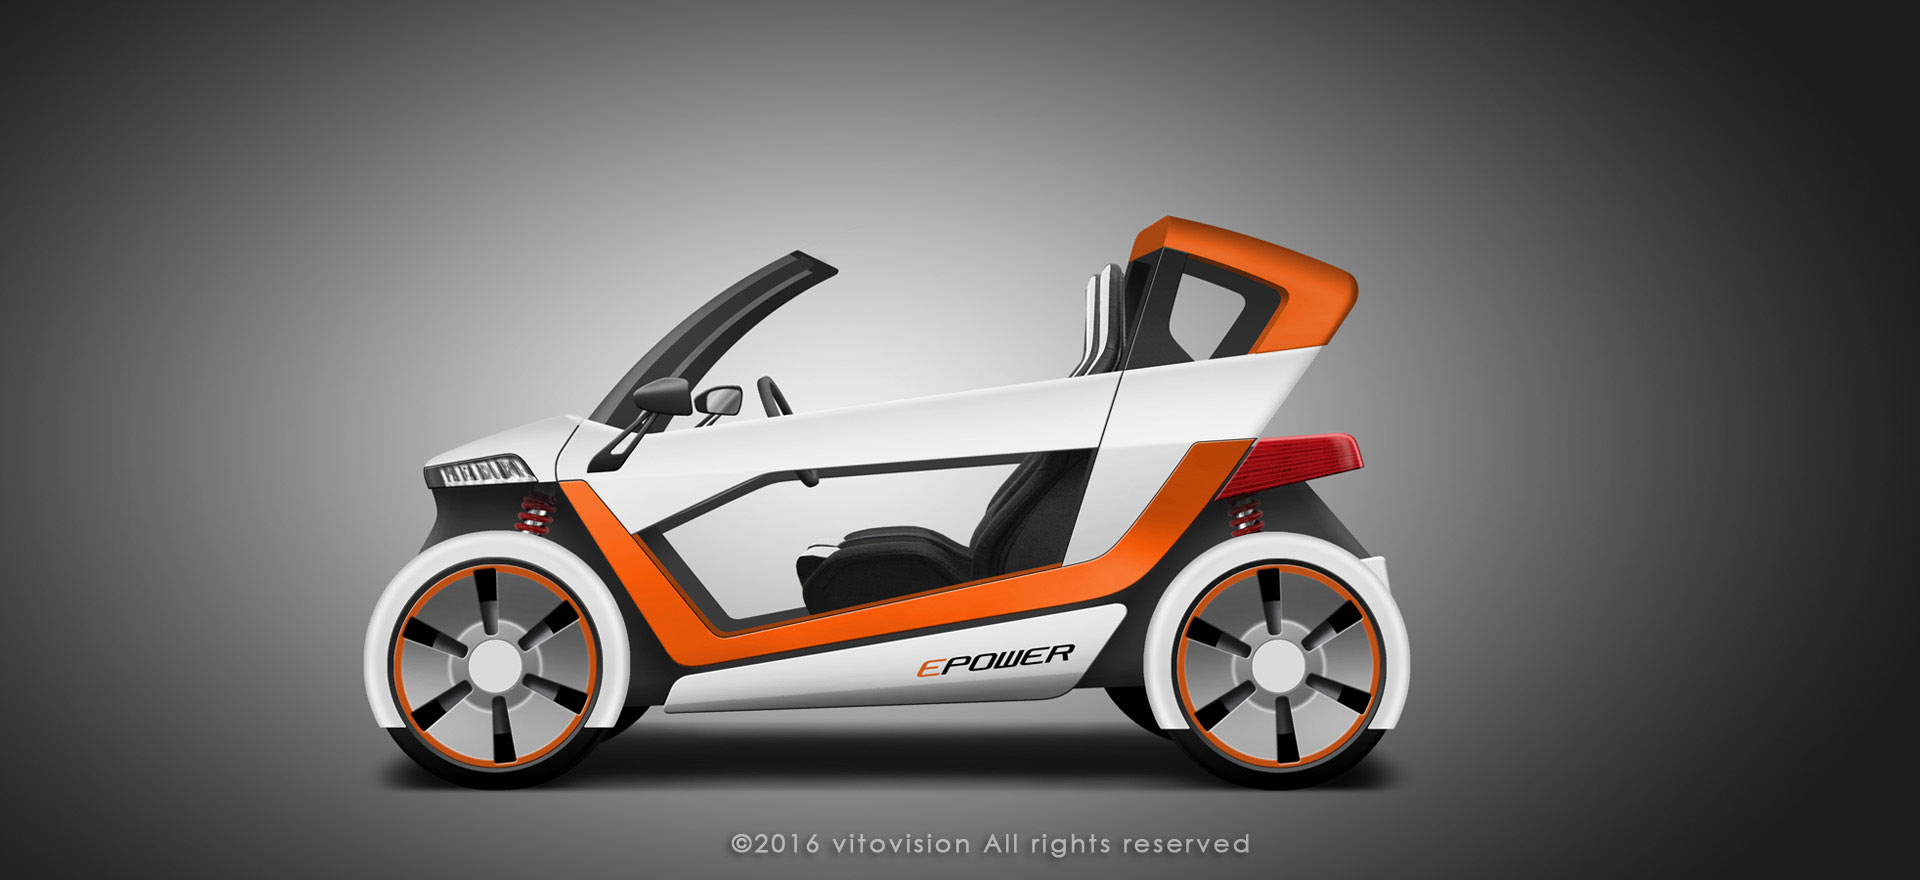 Epower design concept emobility from vitovision